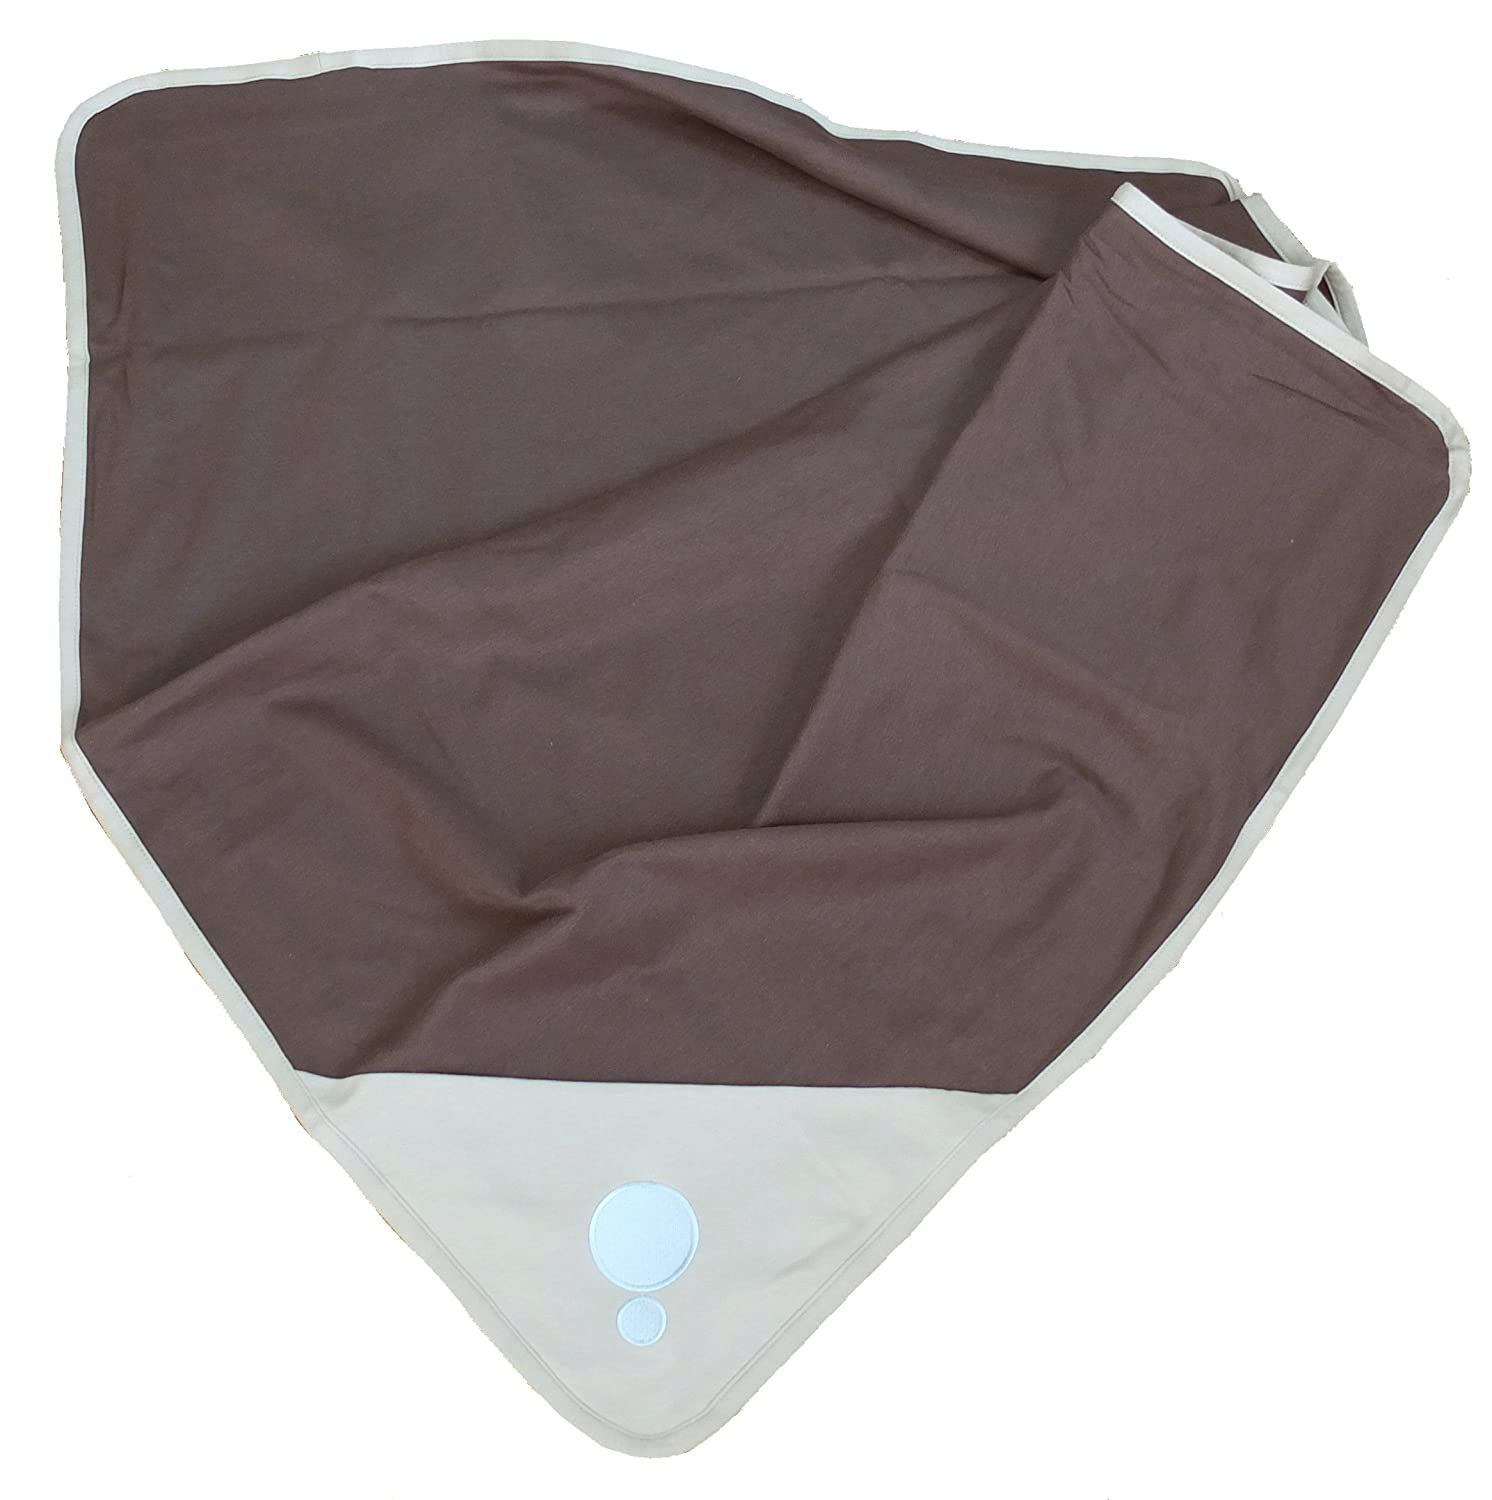 BELLY ARMOR Anti-Radiation Belly Blanket Chic Metro (Light Grey, 100% Cotton, 30 x 35 inches) | Radiation-shielding Baby Blanket | EMF Protection for Pregnancy, Fertility, Early Childhood RadiaShield Technologies BBC.M.04.10.00002